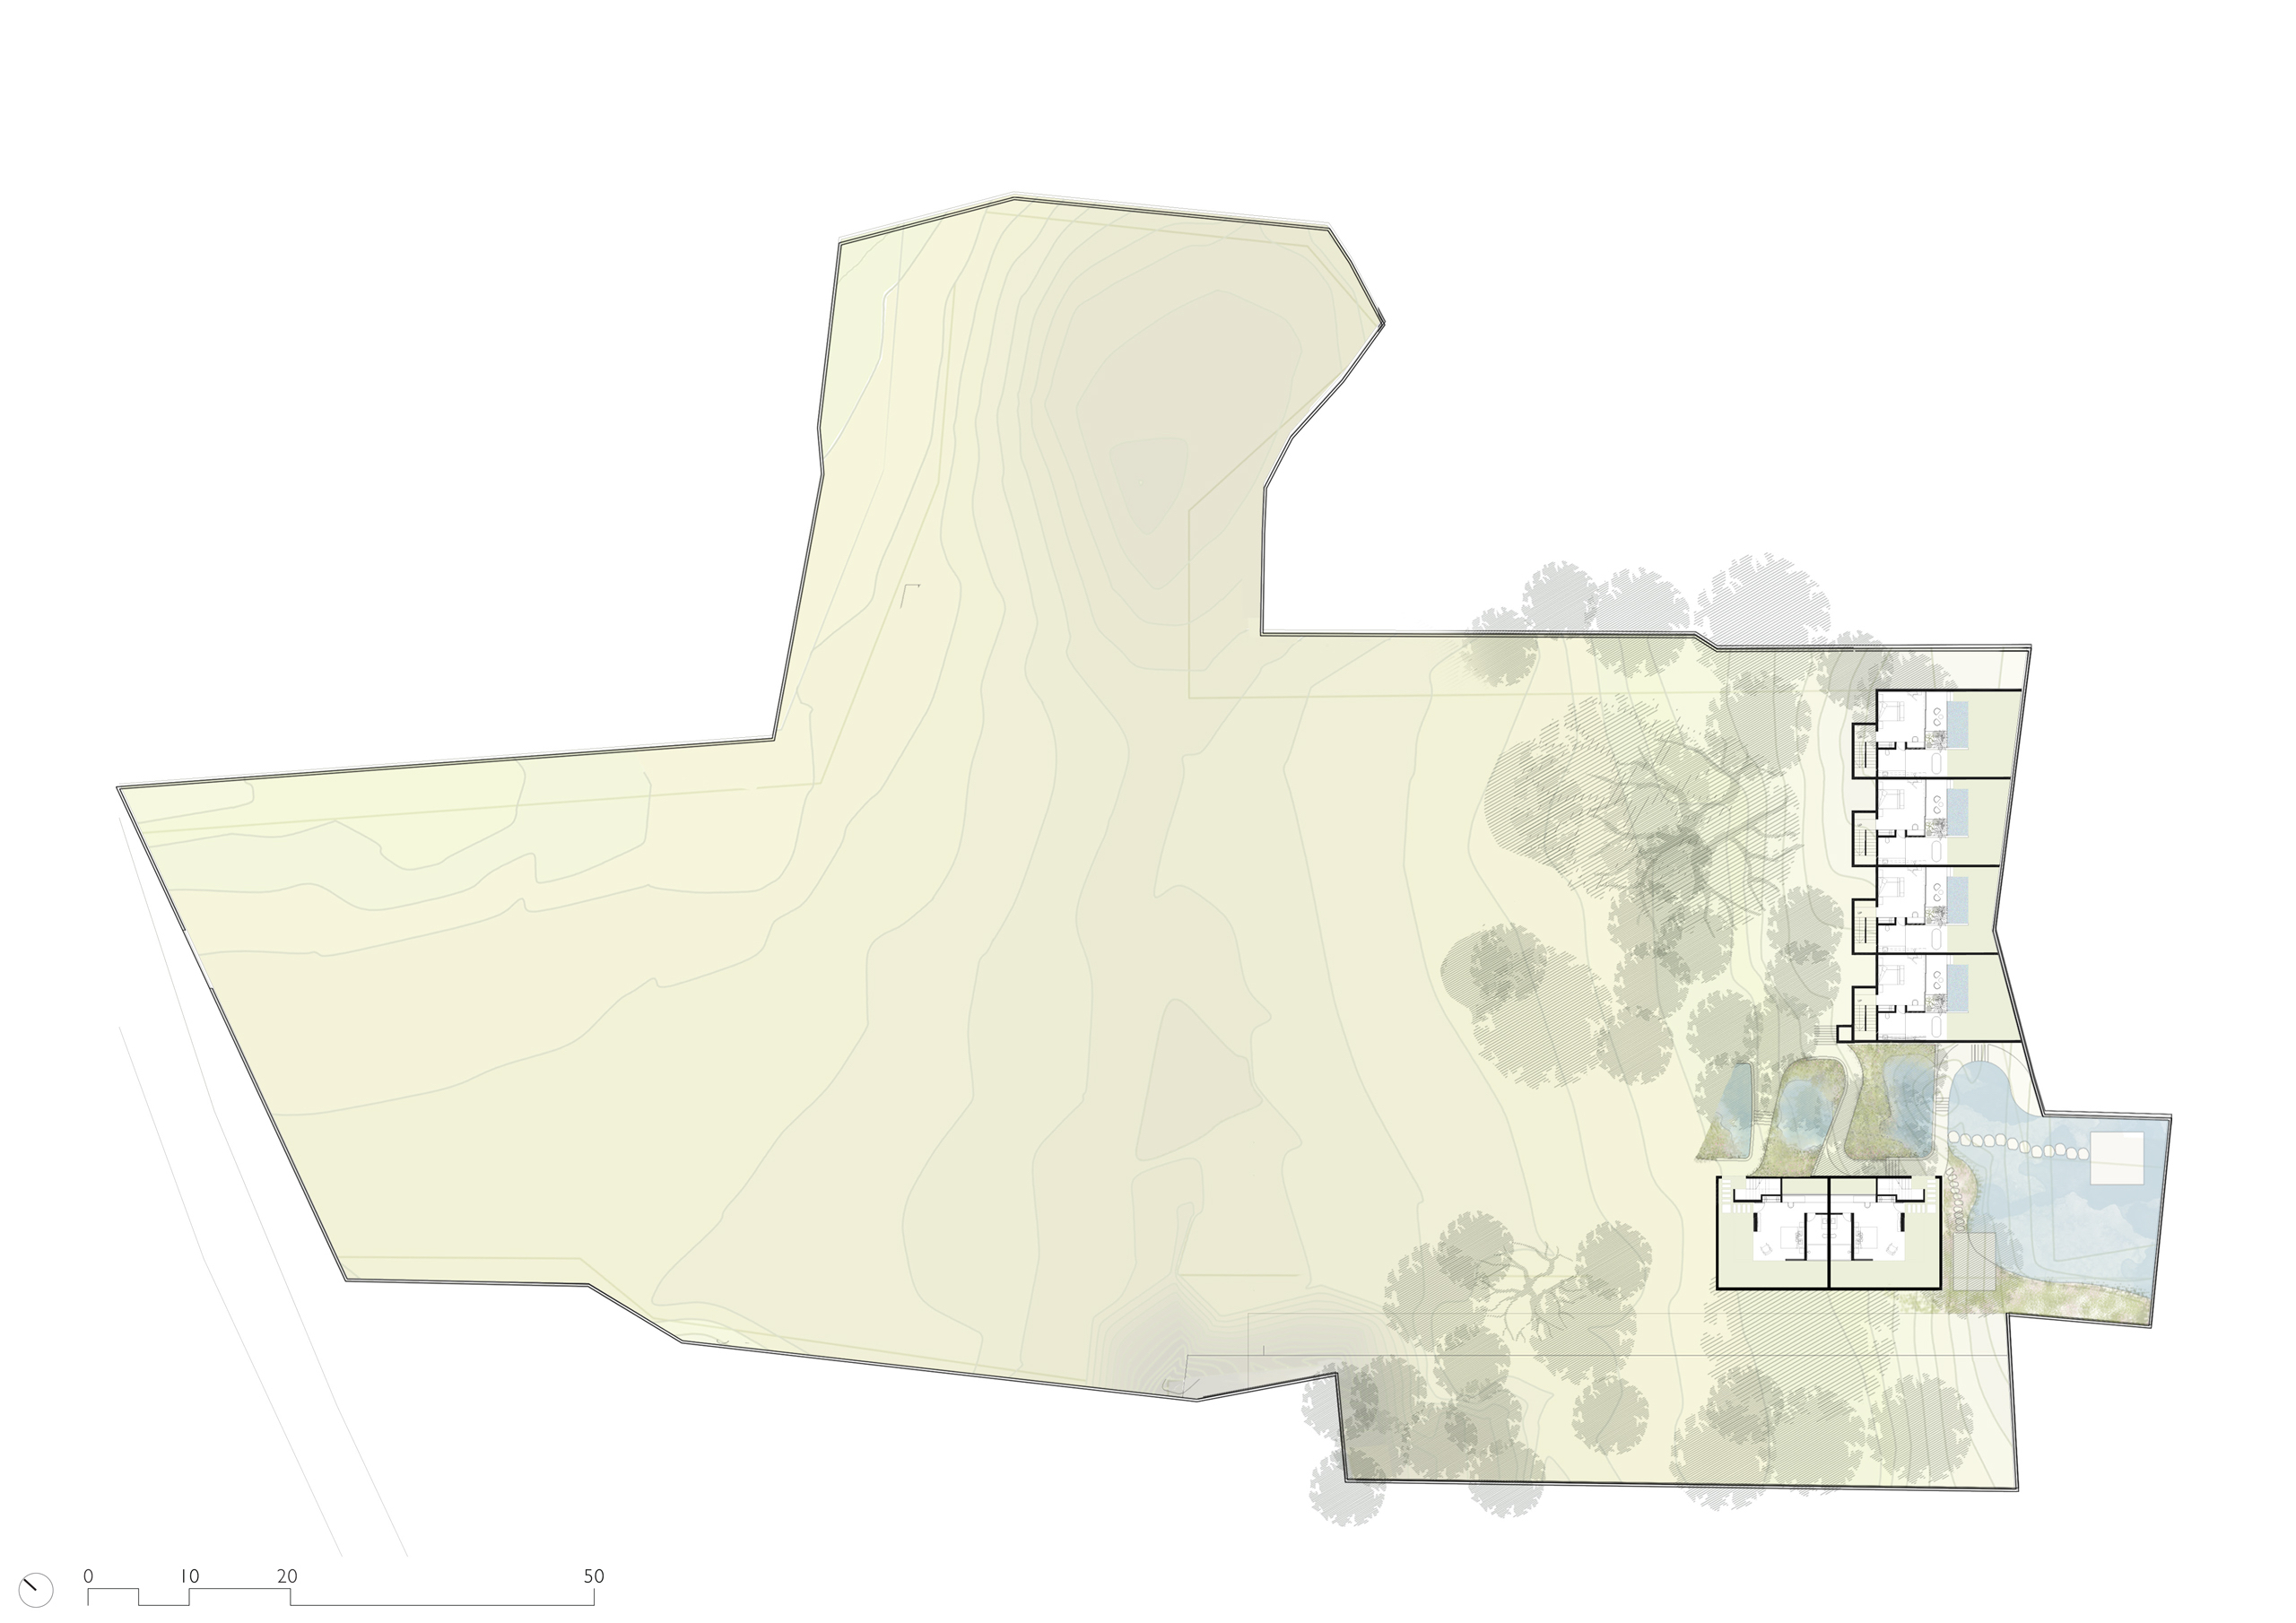 Floor Plan of Mandwa Wellness Resort